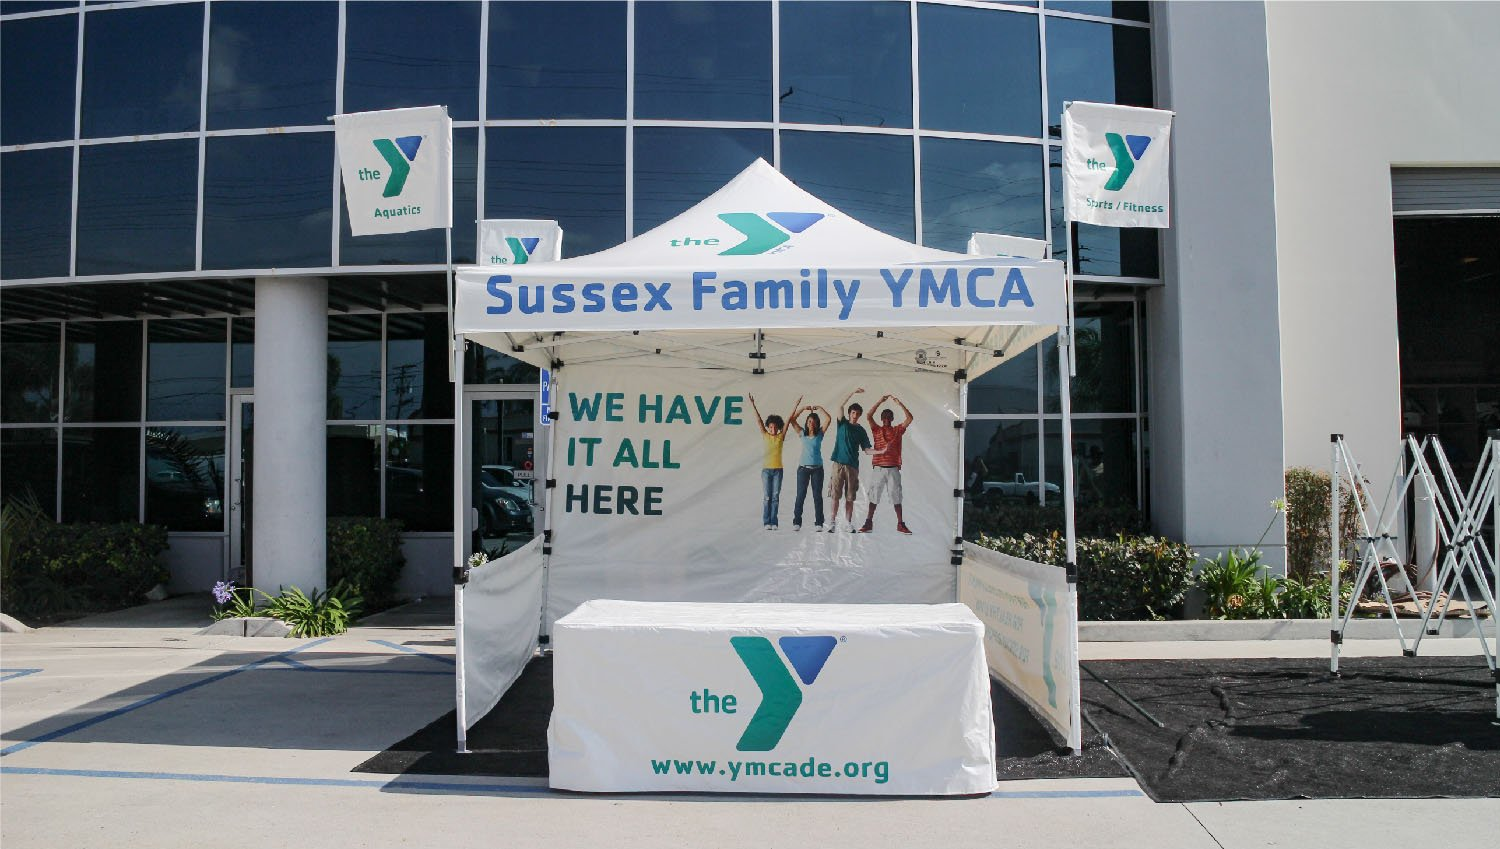 Customized canopy with tent flags on all four corners, printed with the YMCA logo